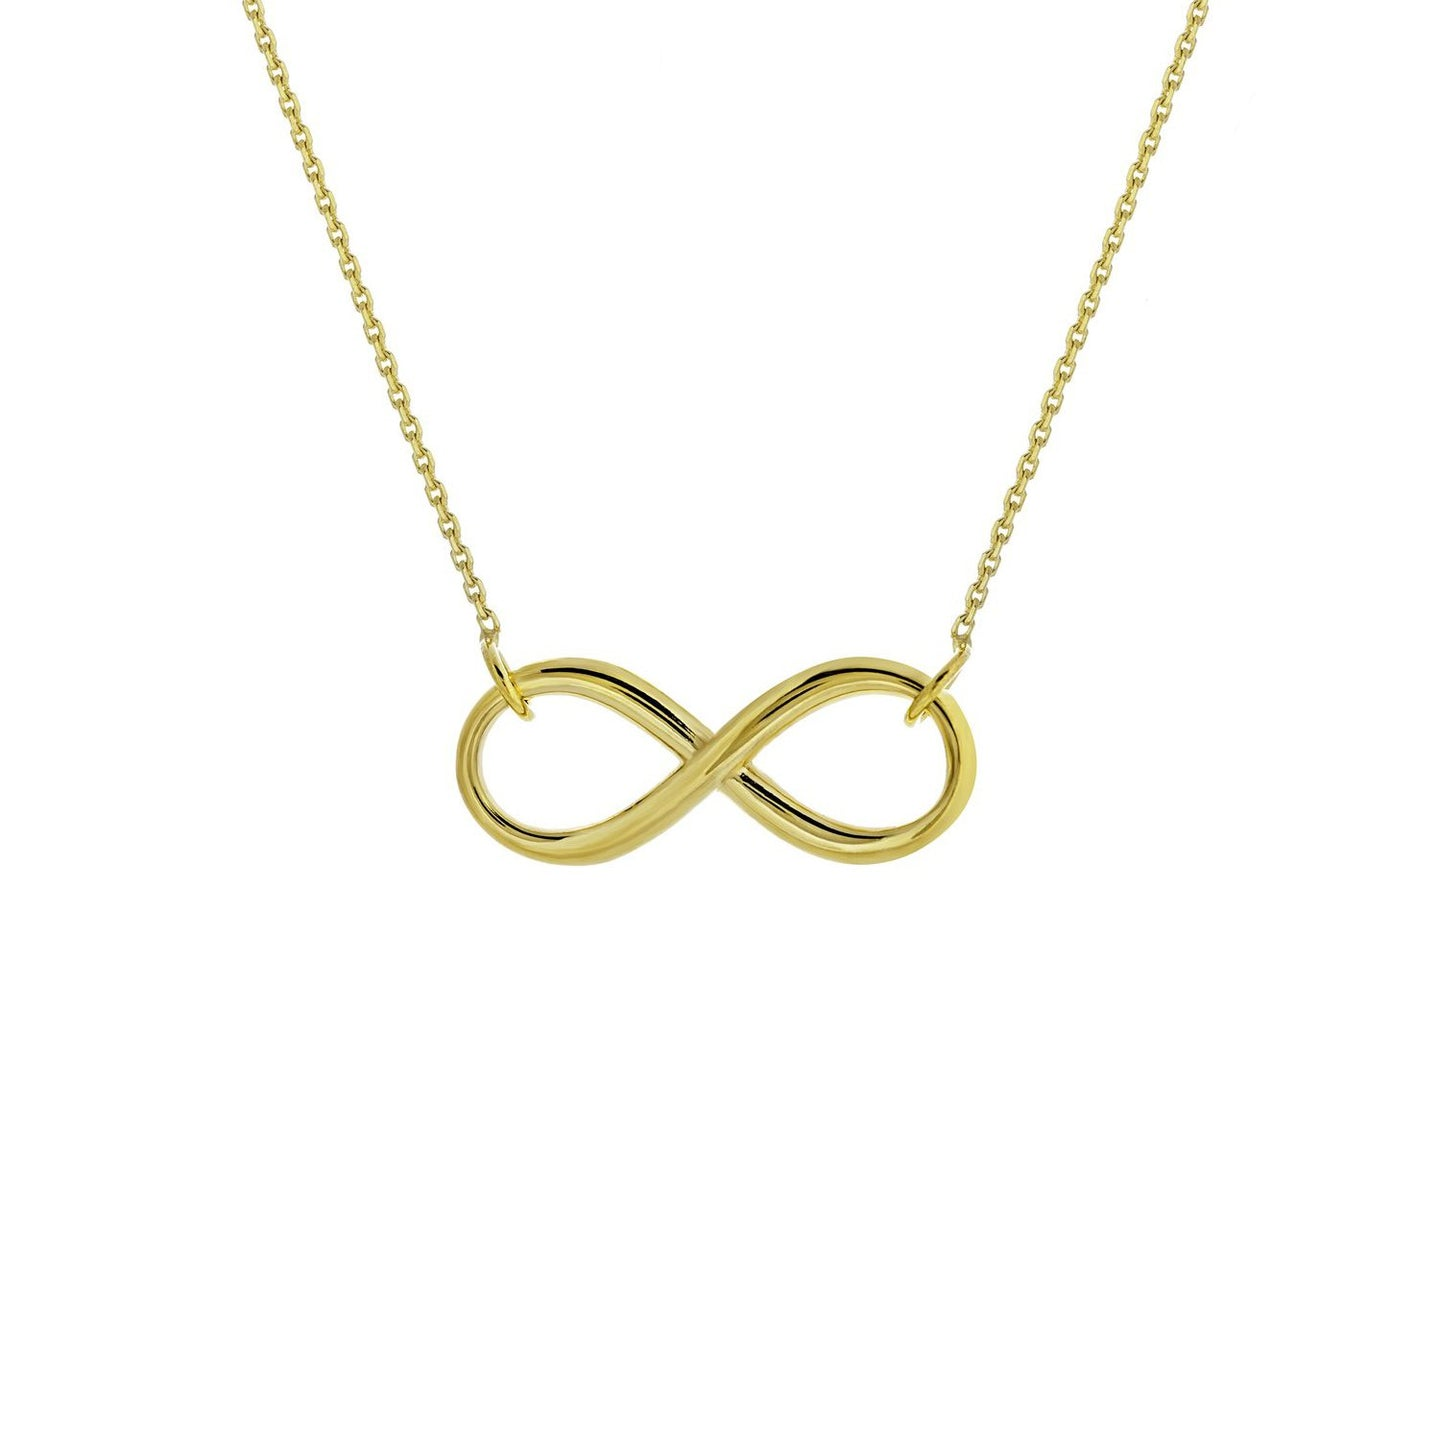 Sabel Everyday Collection 14K Yellow Gold Infinity Necklace